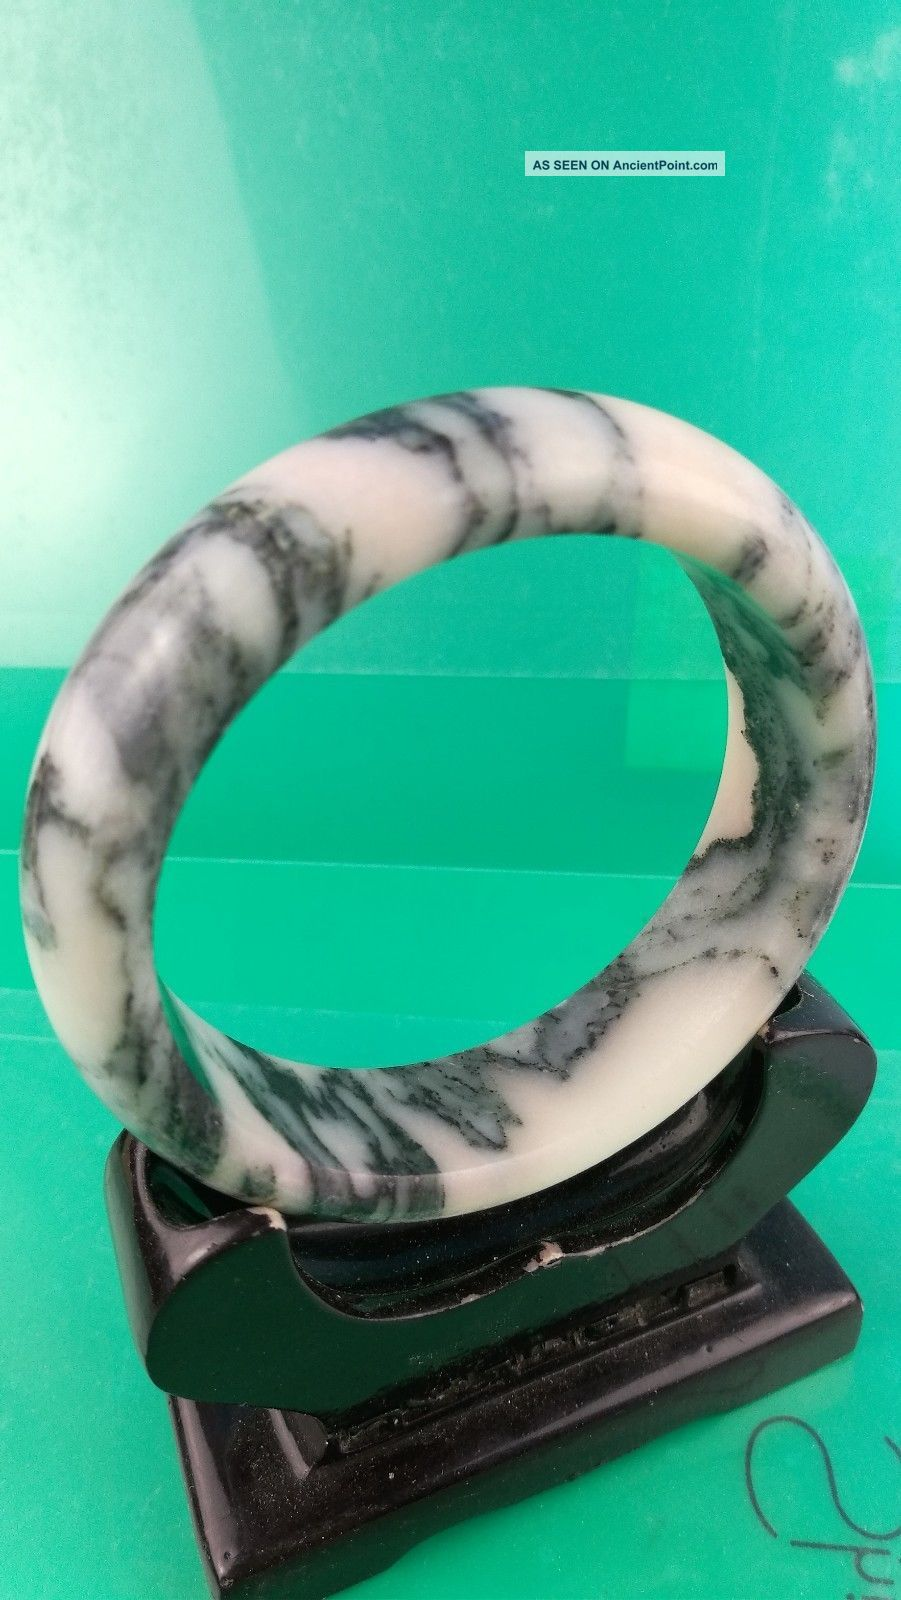 Chinese Natural Jade Hand - Carved Jades Bracelets Bangle 61 Mm Diameter A15 Bracelets photo